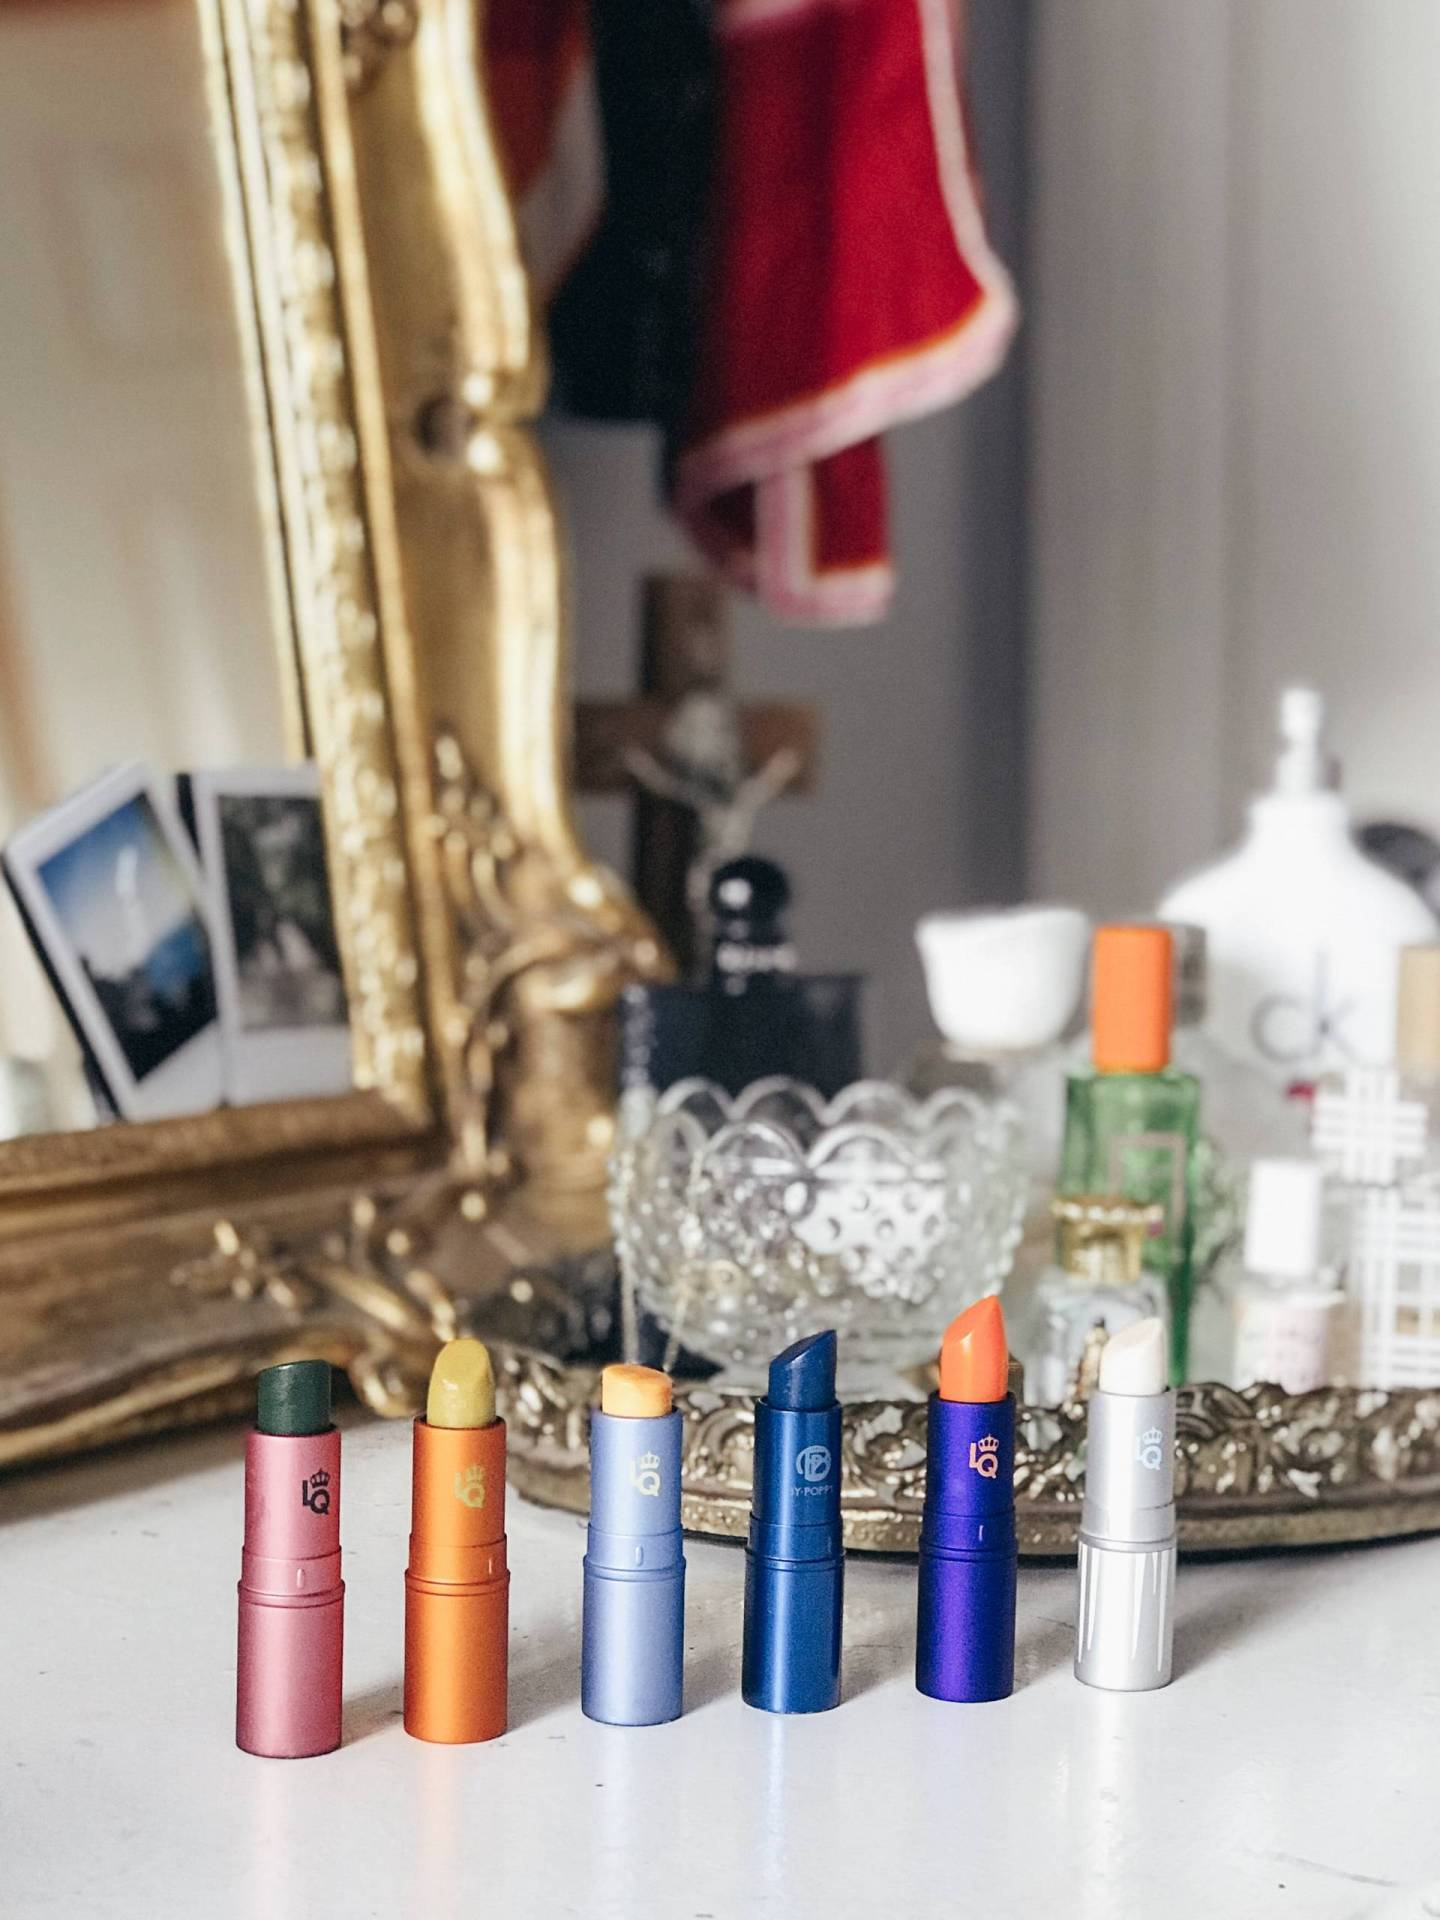 Would you ever wear a green lipstick? What if I told you it would turn a beautiful pink color when applied?! Read on for reviews of more of Lipstick Queen's infamous color-changing lipsticks!